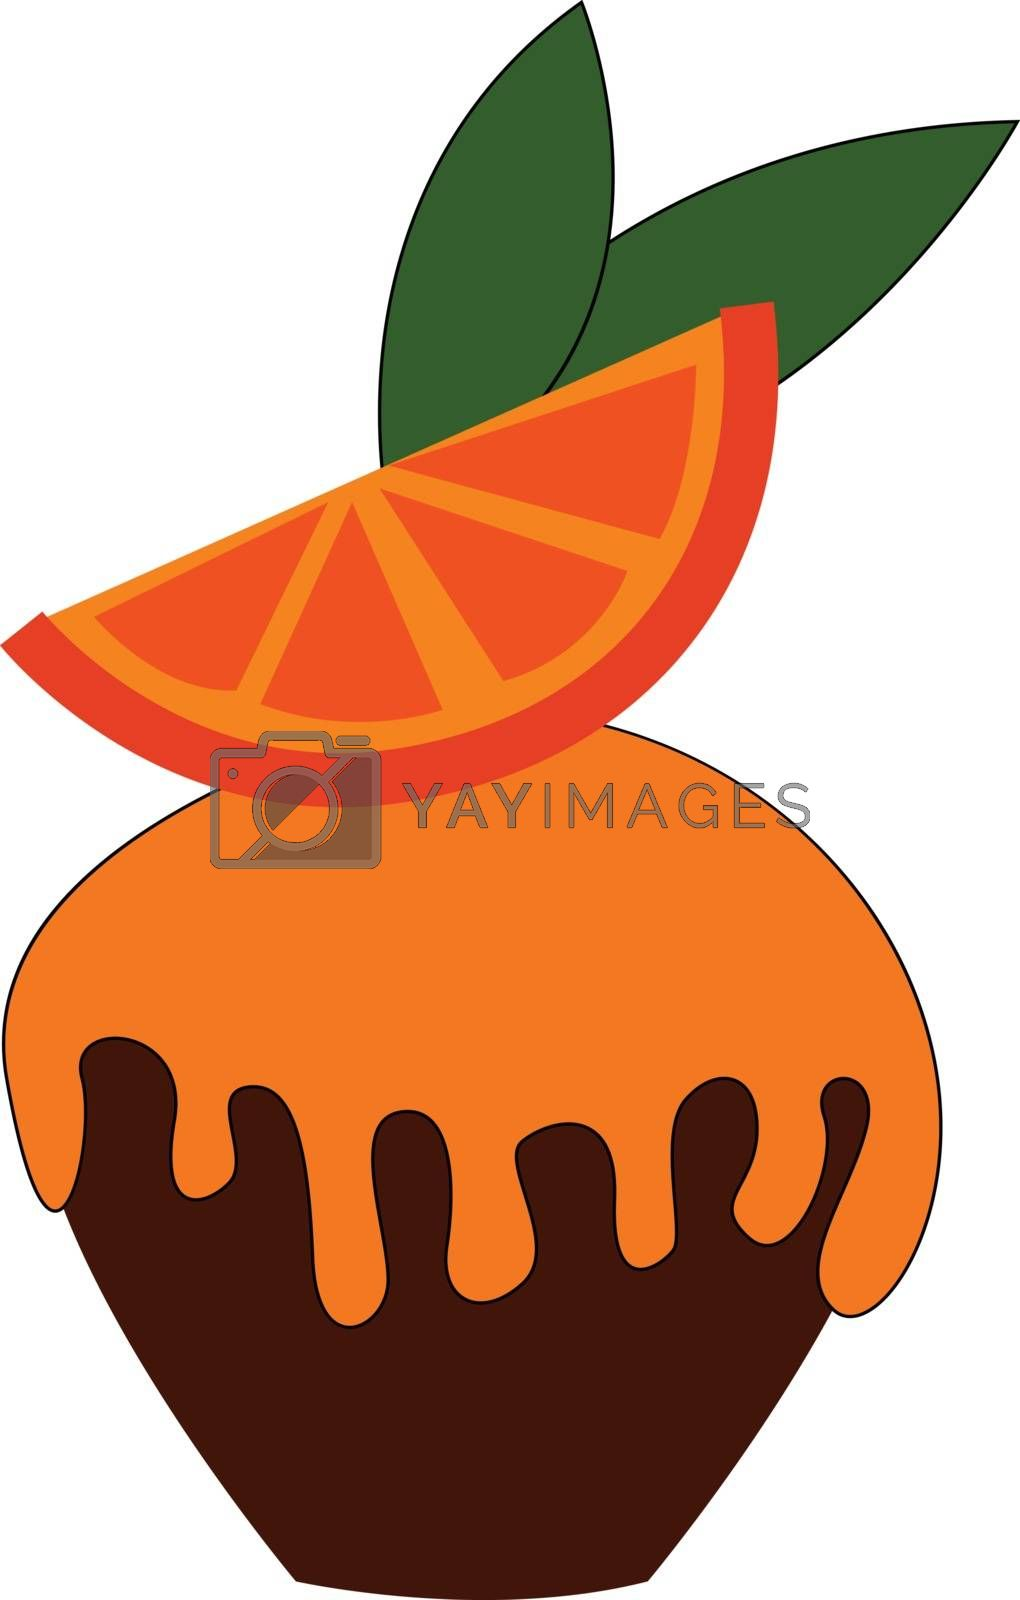 Royalty free image of Cupcake garnished with an orange pie vector or color illustratio by Morphart